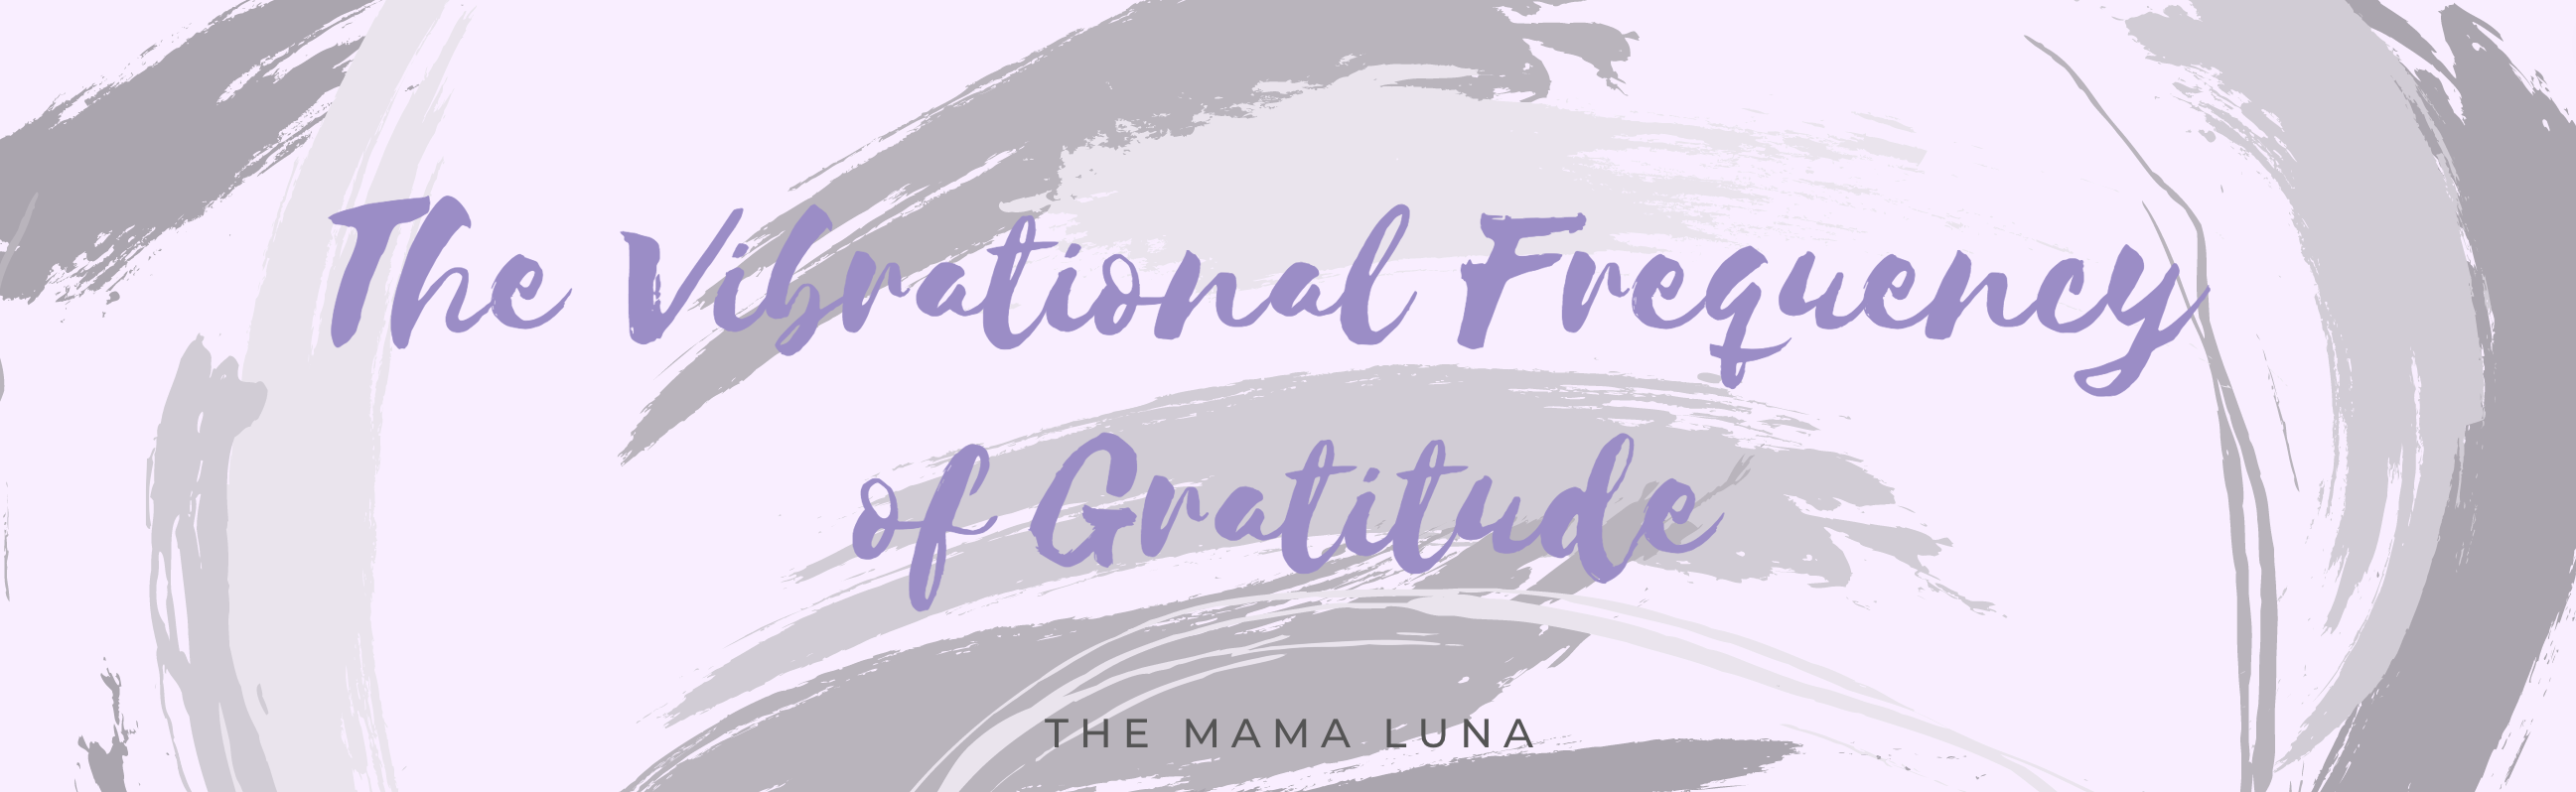 The Vibrational Frequency of Gratitude